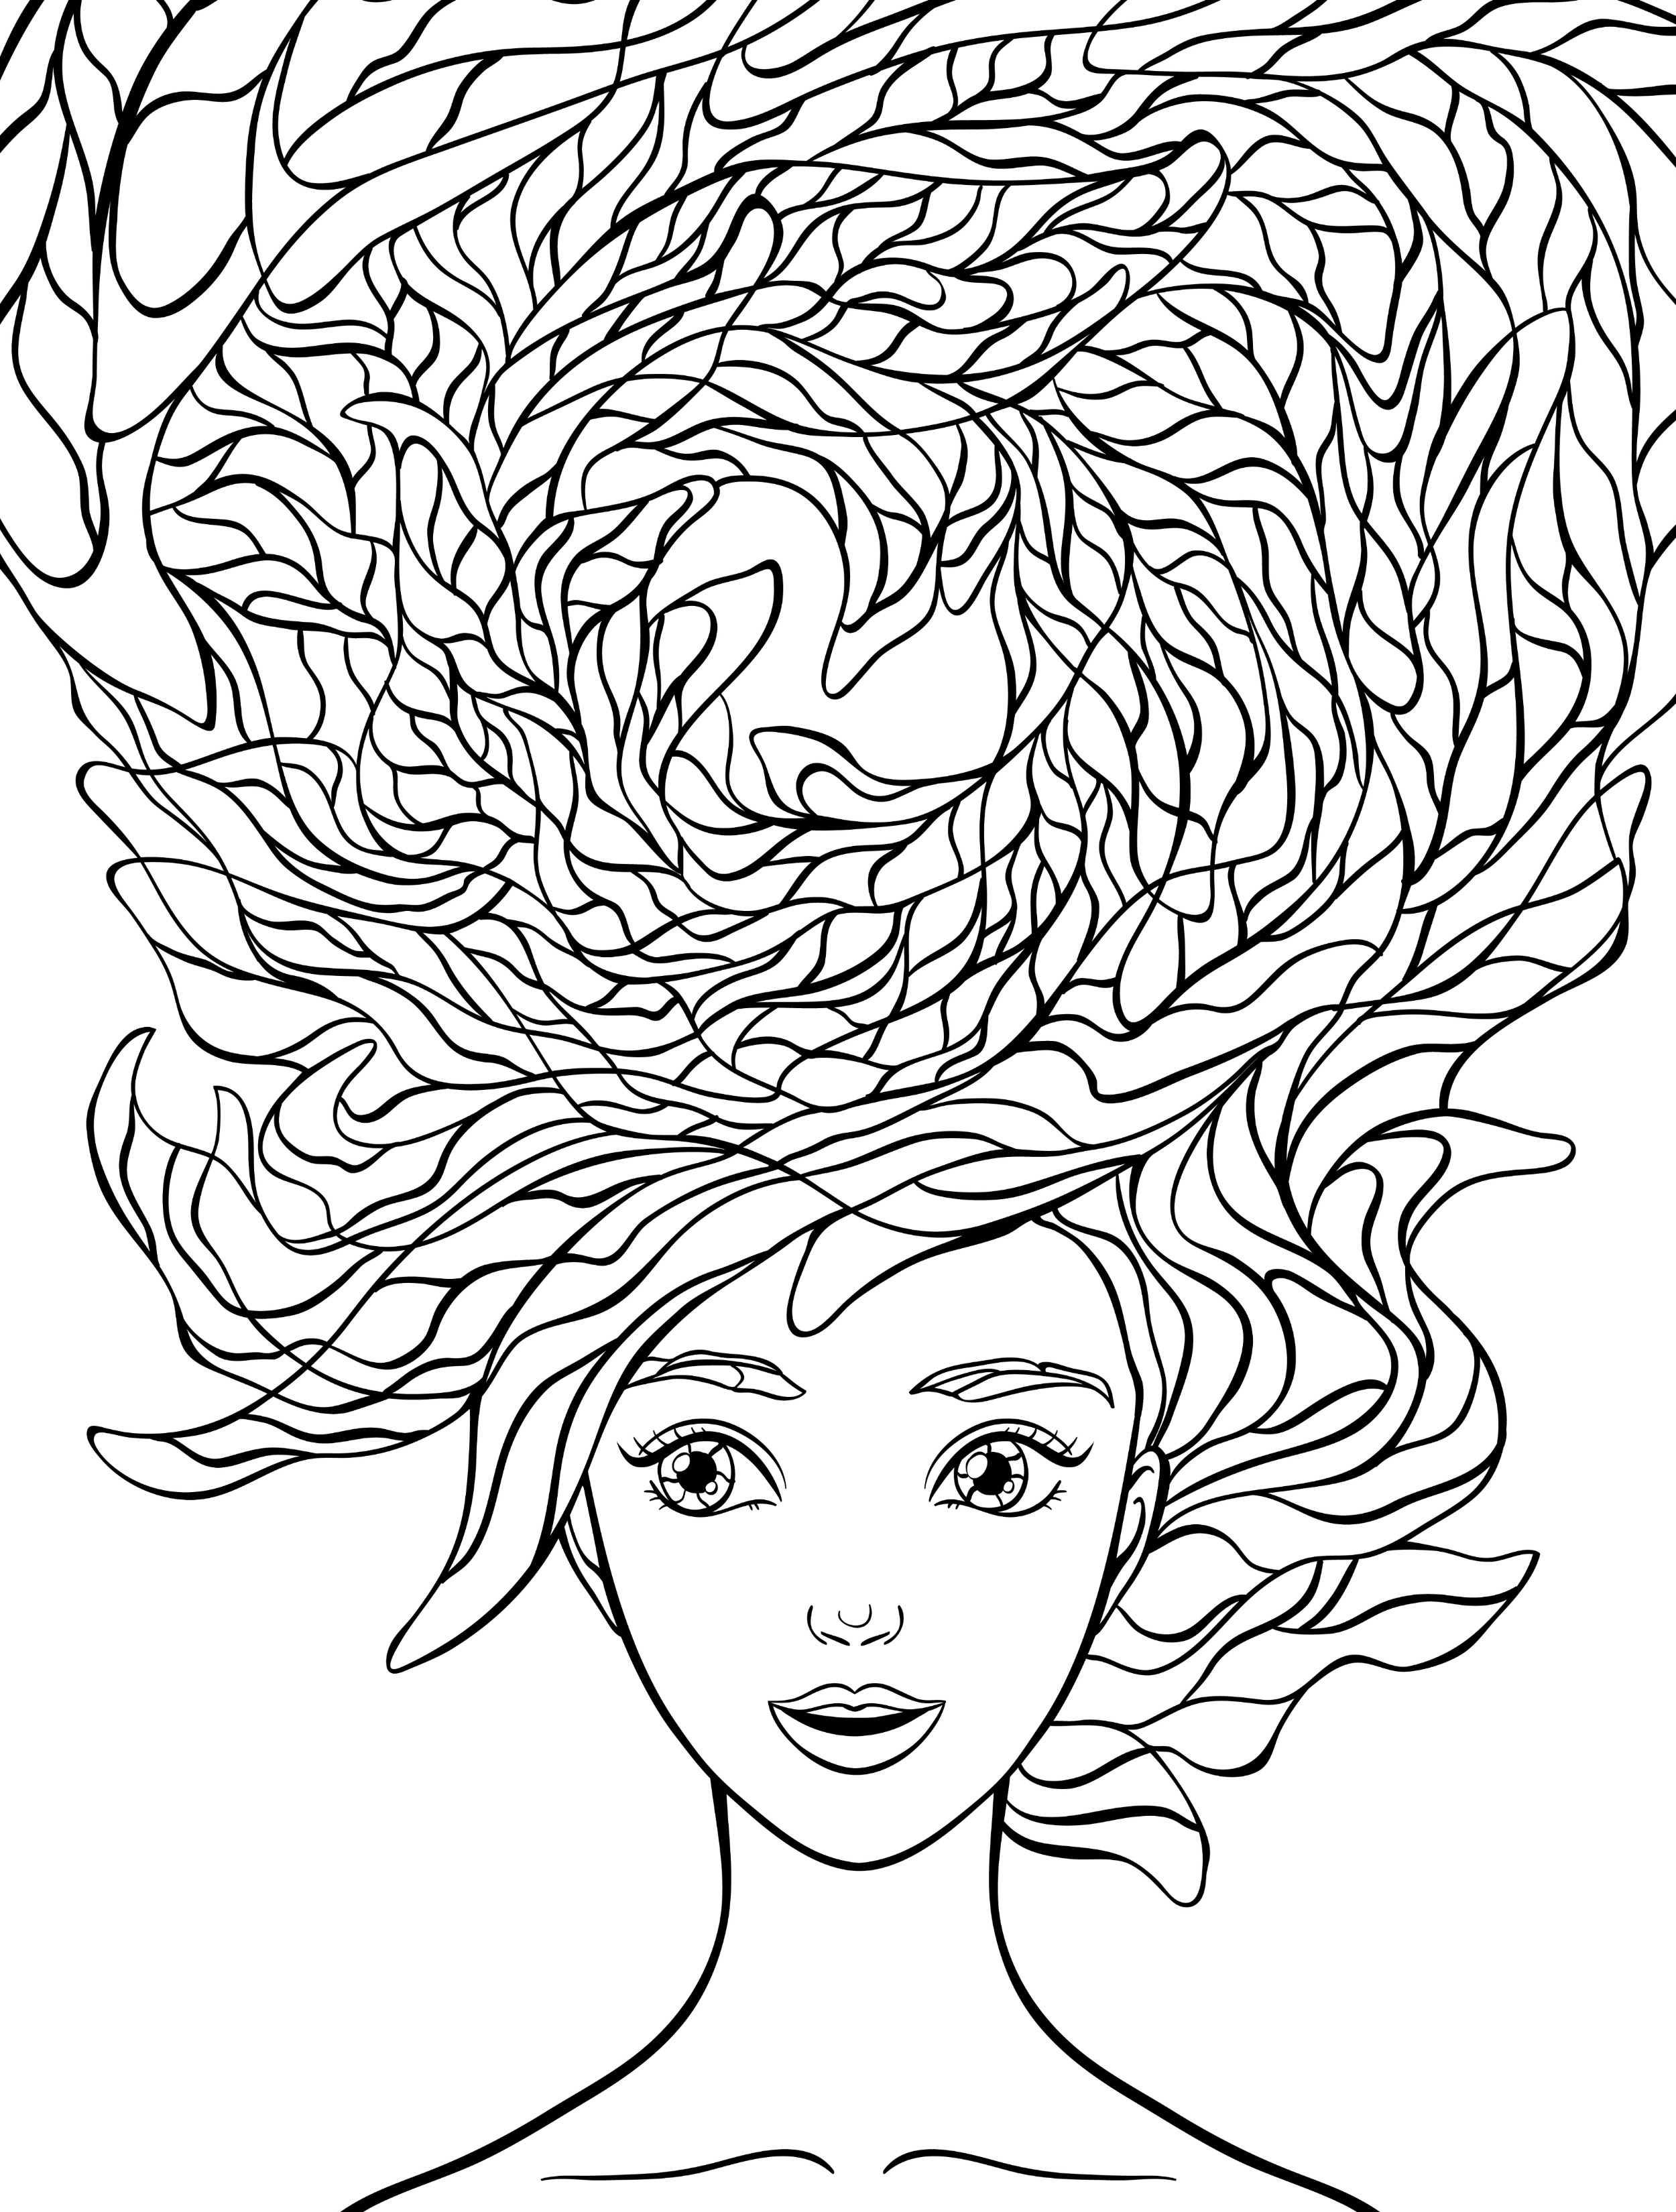 Wacky Coloring Pages